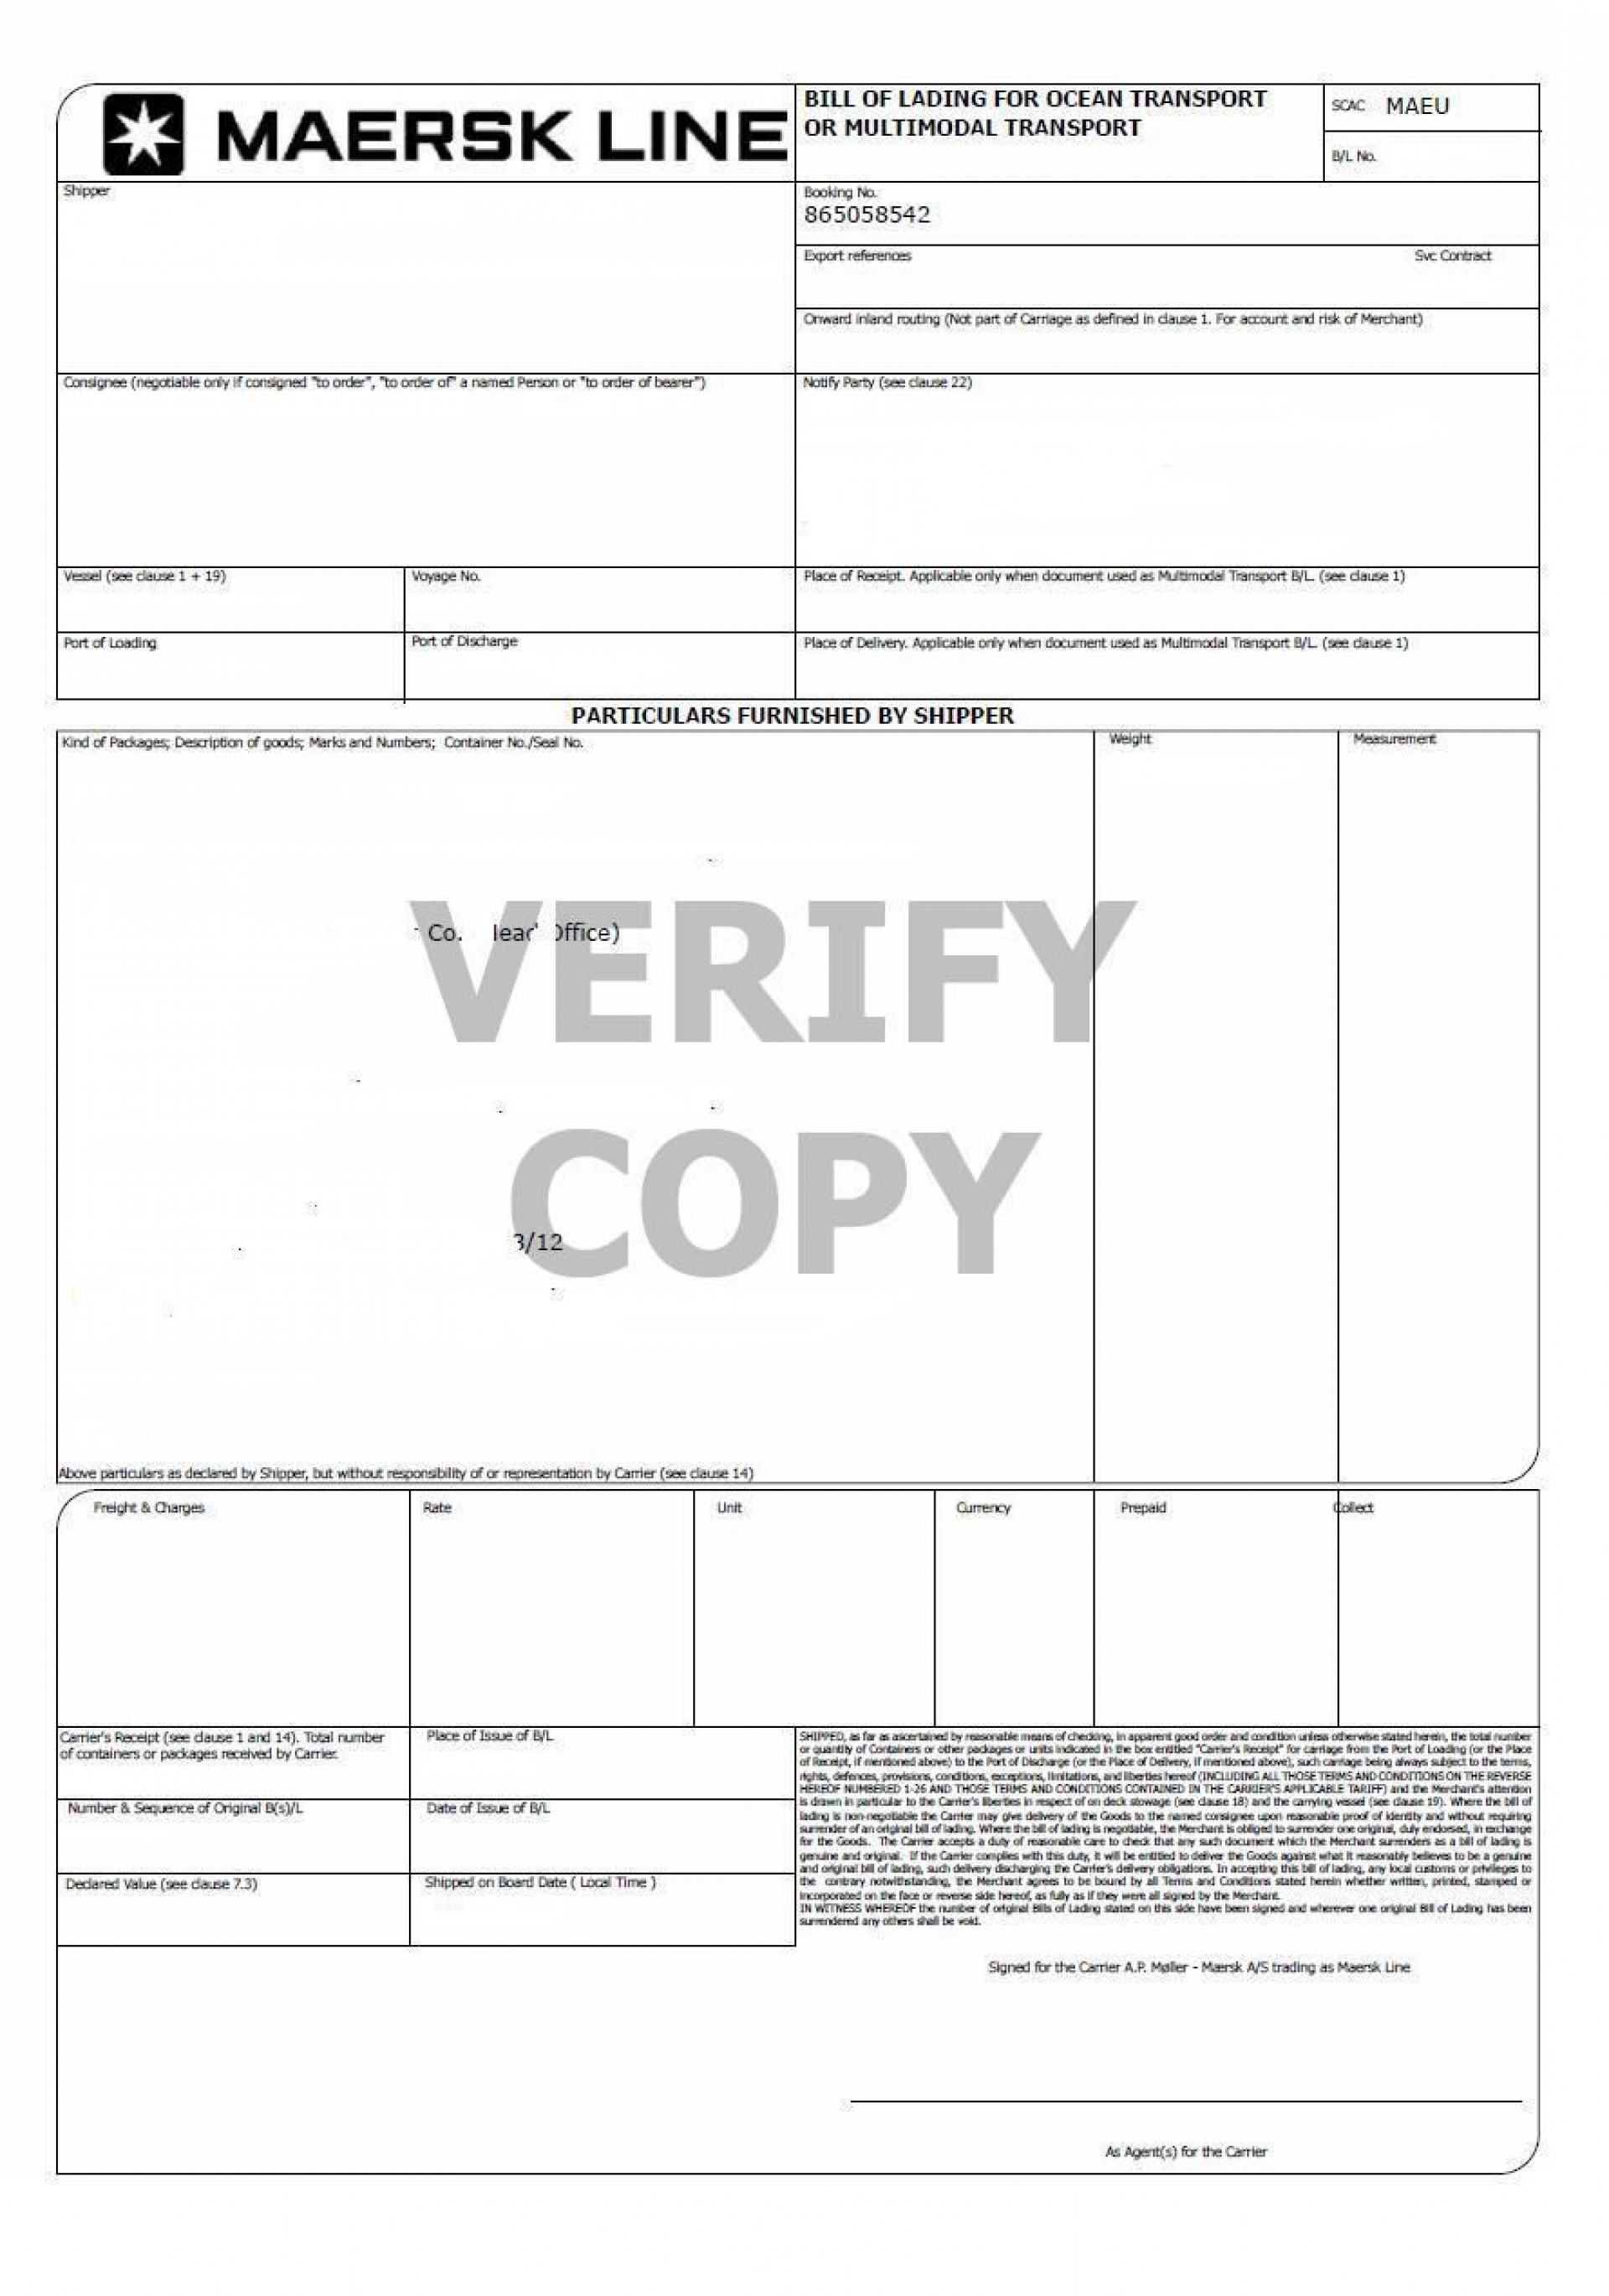 007 Fantastic Bill Of Lading Template Microsoft Word Picture 1920